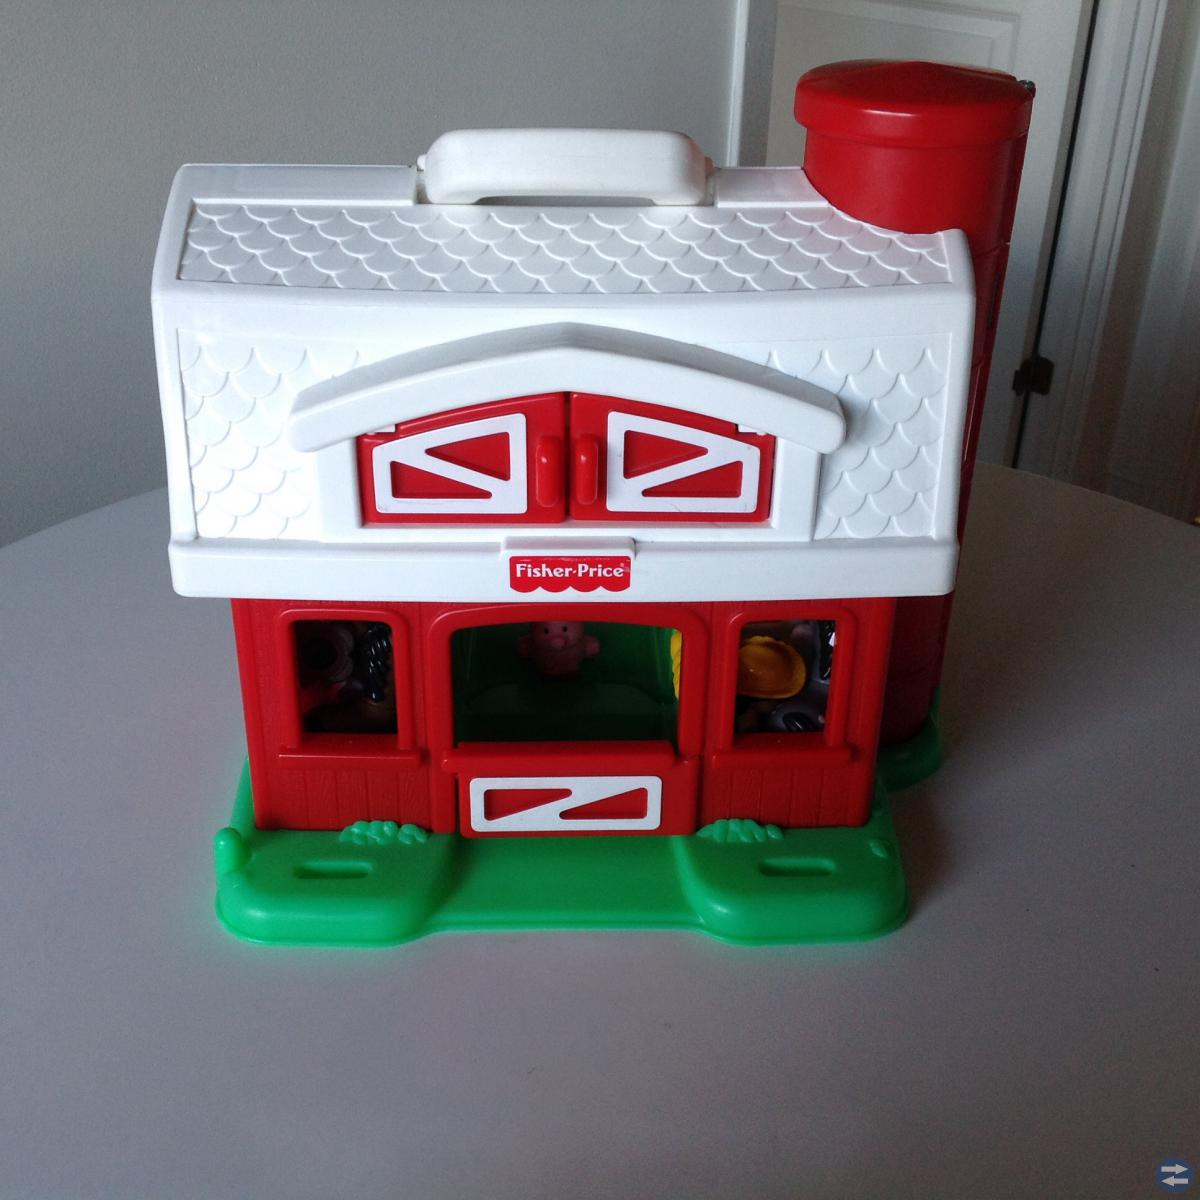 Bondgård Fisher Price